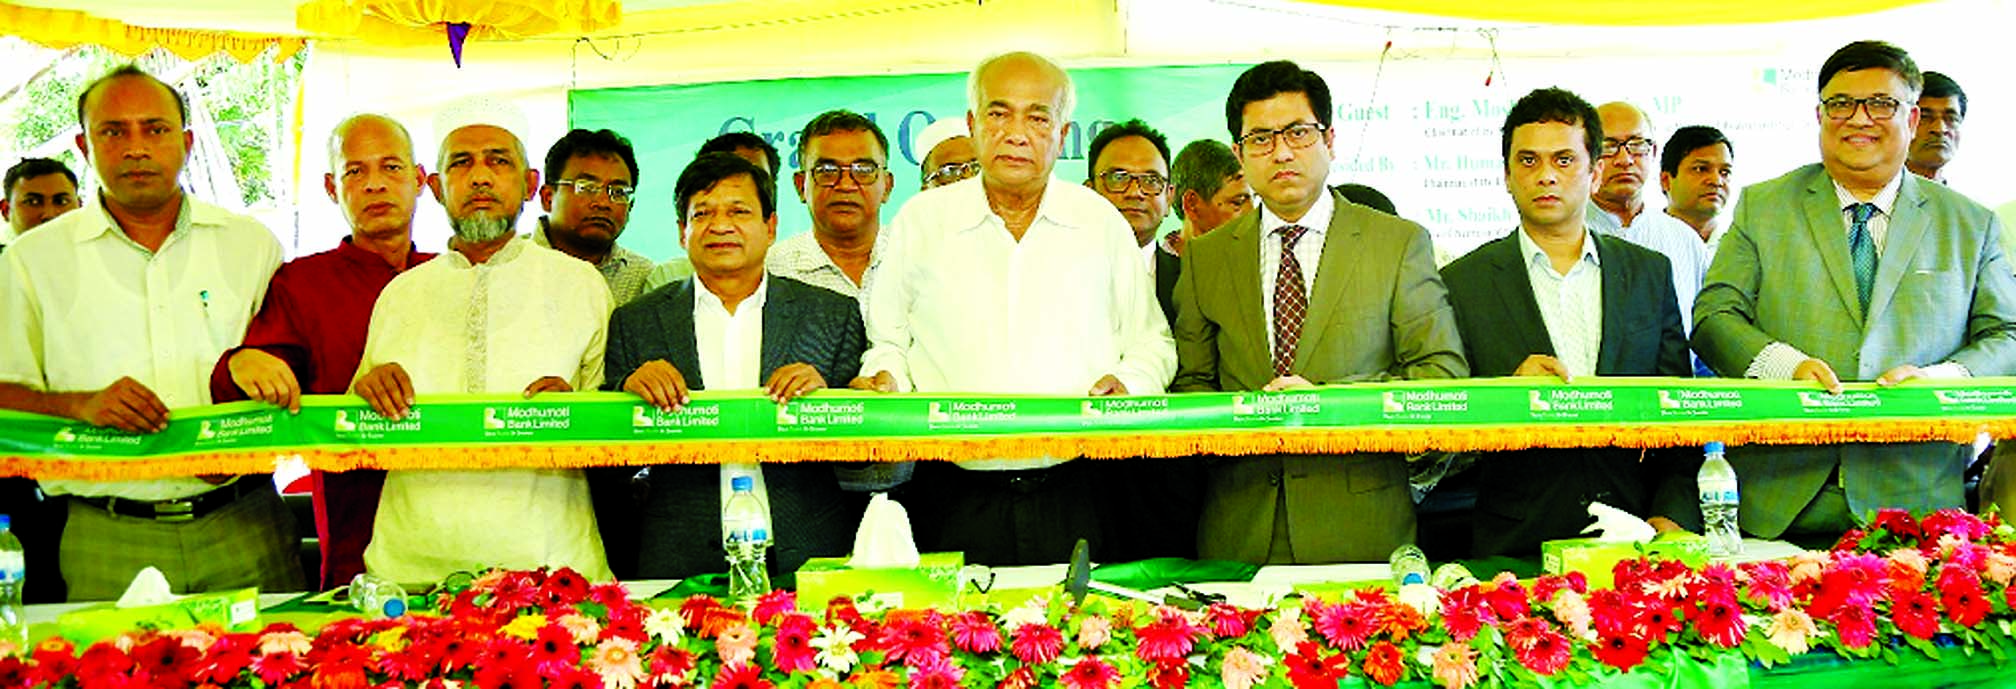 Eng. Mosharraf Hossain, MP, Chairman of the Parliamentary Standing Committee on the Ministry of Housing and Public Works, inaugurating the 38th branch of Modhumoti Bank Limited at Mirsharai in Chattogram on Tuesday as chief guest. Barrister Sheikh Fazle Noor Taposh, MP, EC Chairman, A Mannan Khan, Barrister Imranul Kabir, Sponsor Director, Md. Shafiul Azam, CEO of the bank and local elites were also present.